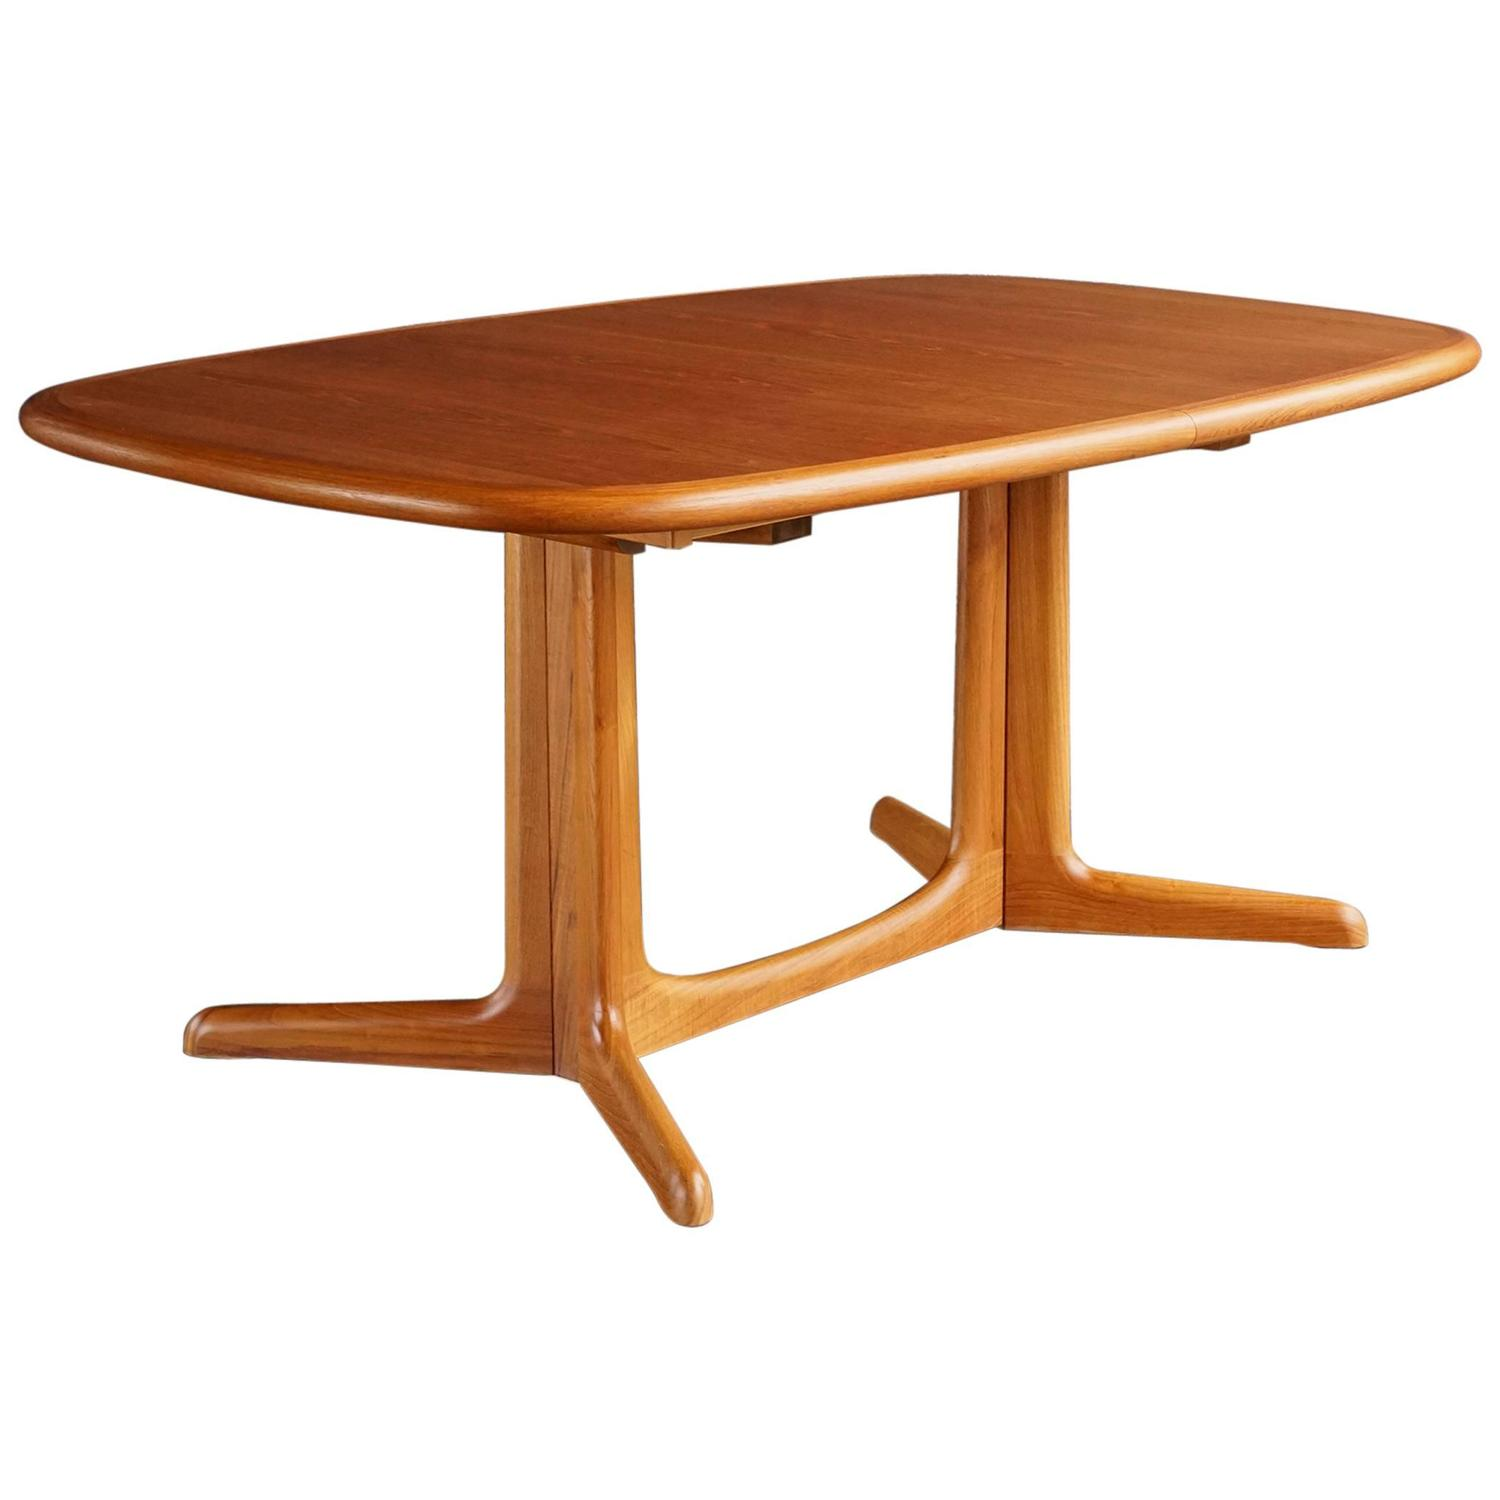 Danish extension dining table at 1stdibs for Dining room tables 1940s